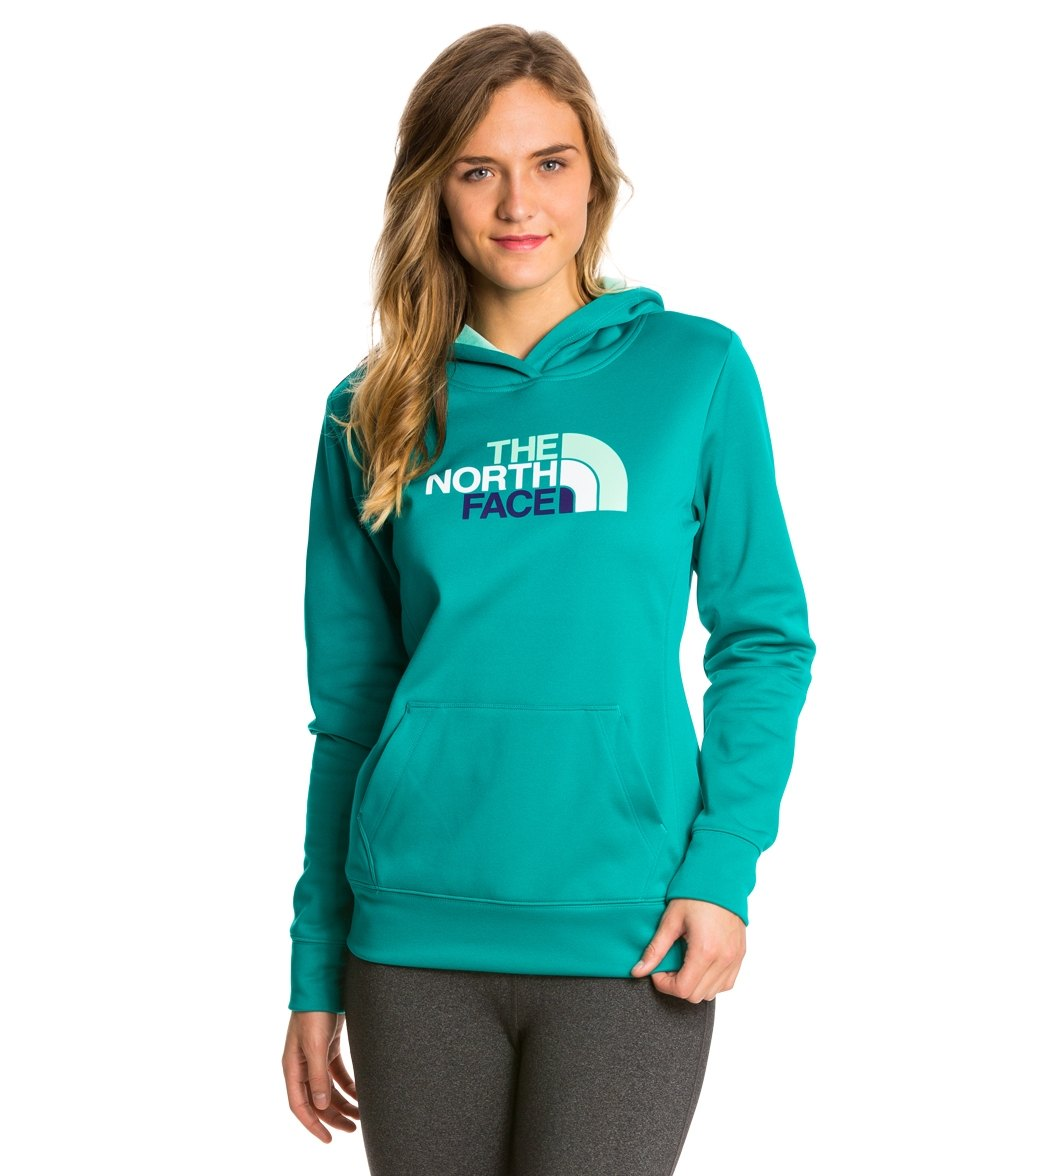 51a9f3089 The North Face Women's Fave Half Dome Pullover Hoodie at SwimOutlet.com -  Free Shipping